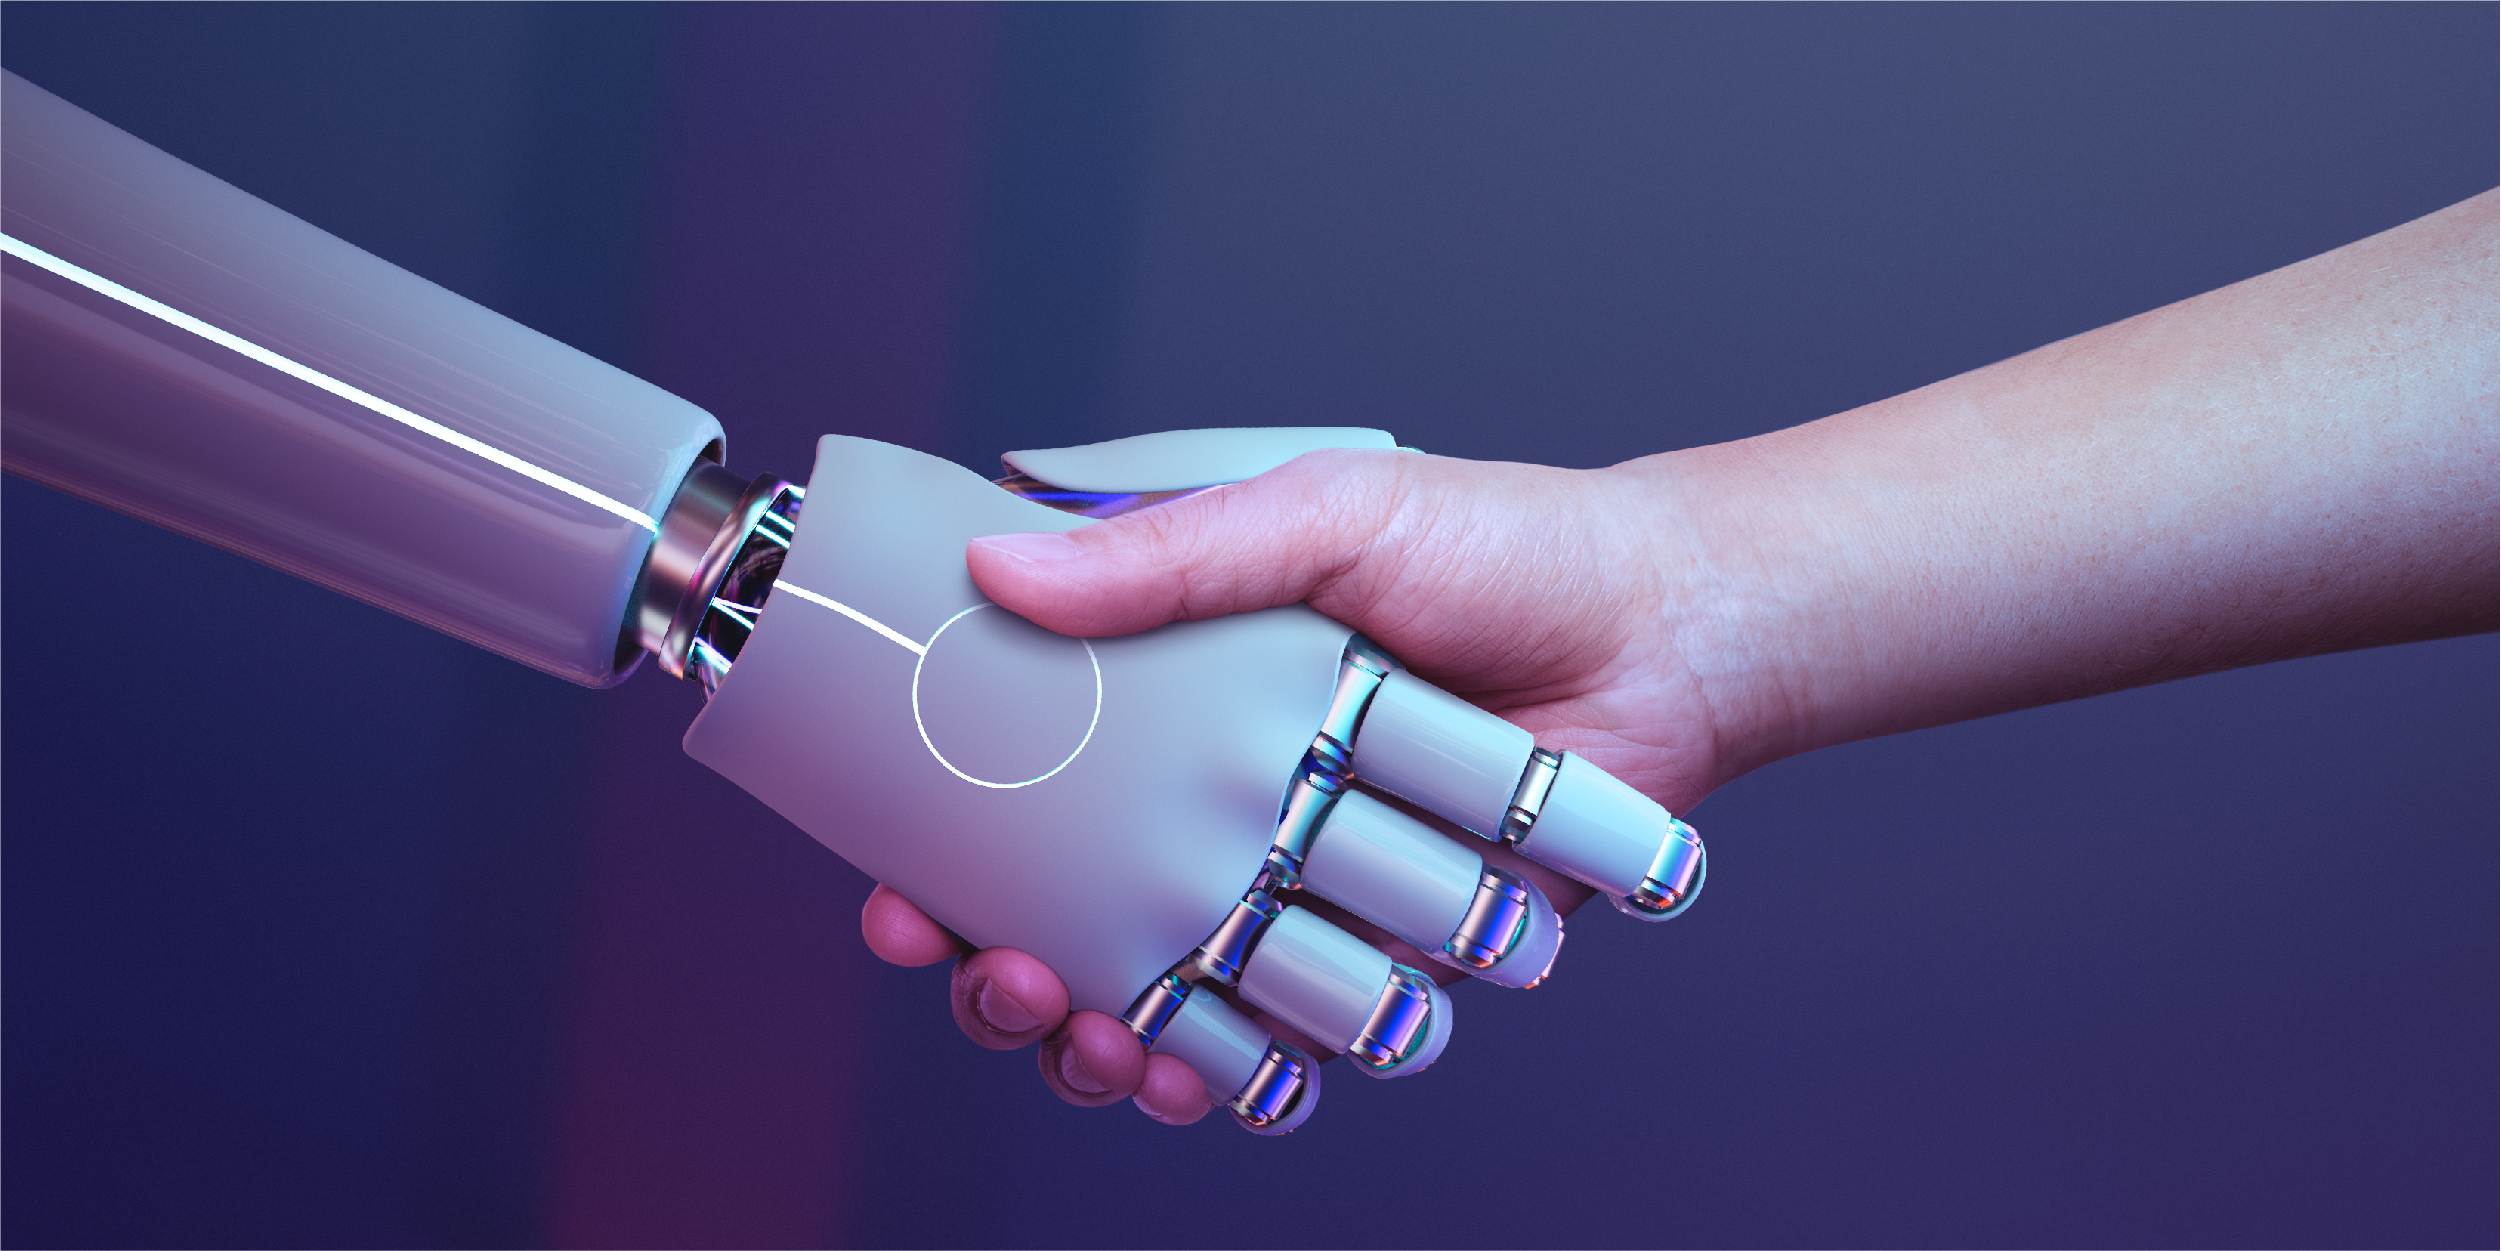 The Future of Accounting Depends on Tech & Partnerships Like Vic.ai + Botkeeper | Botkeeper